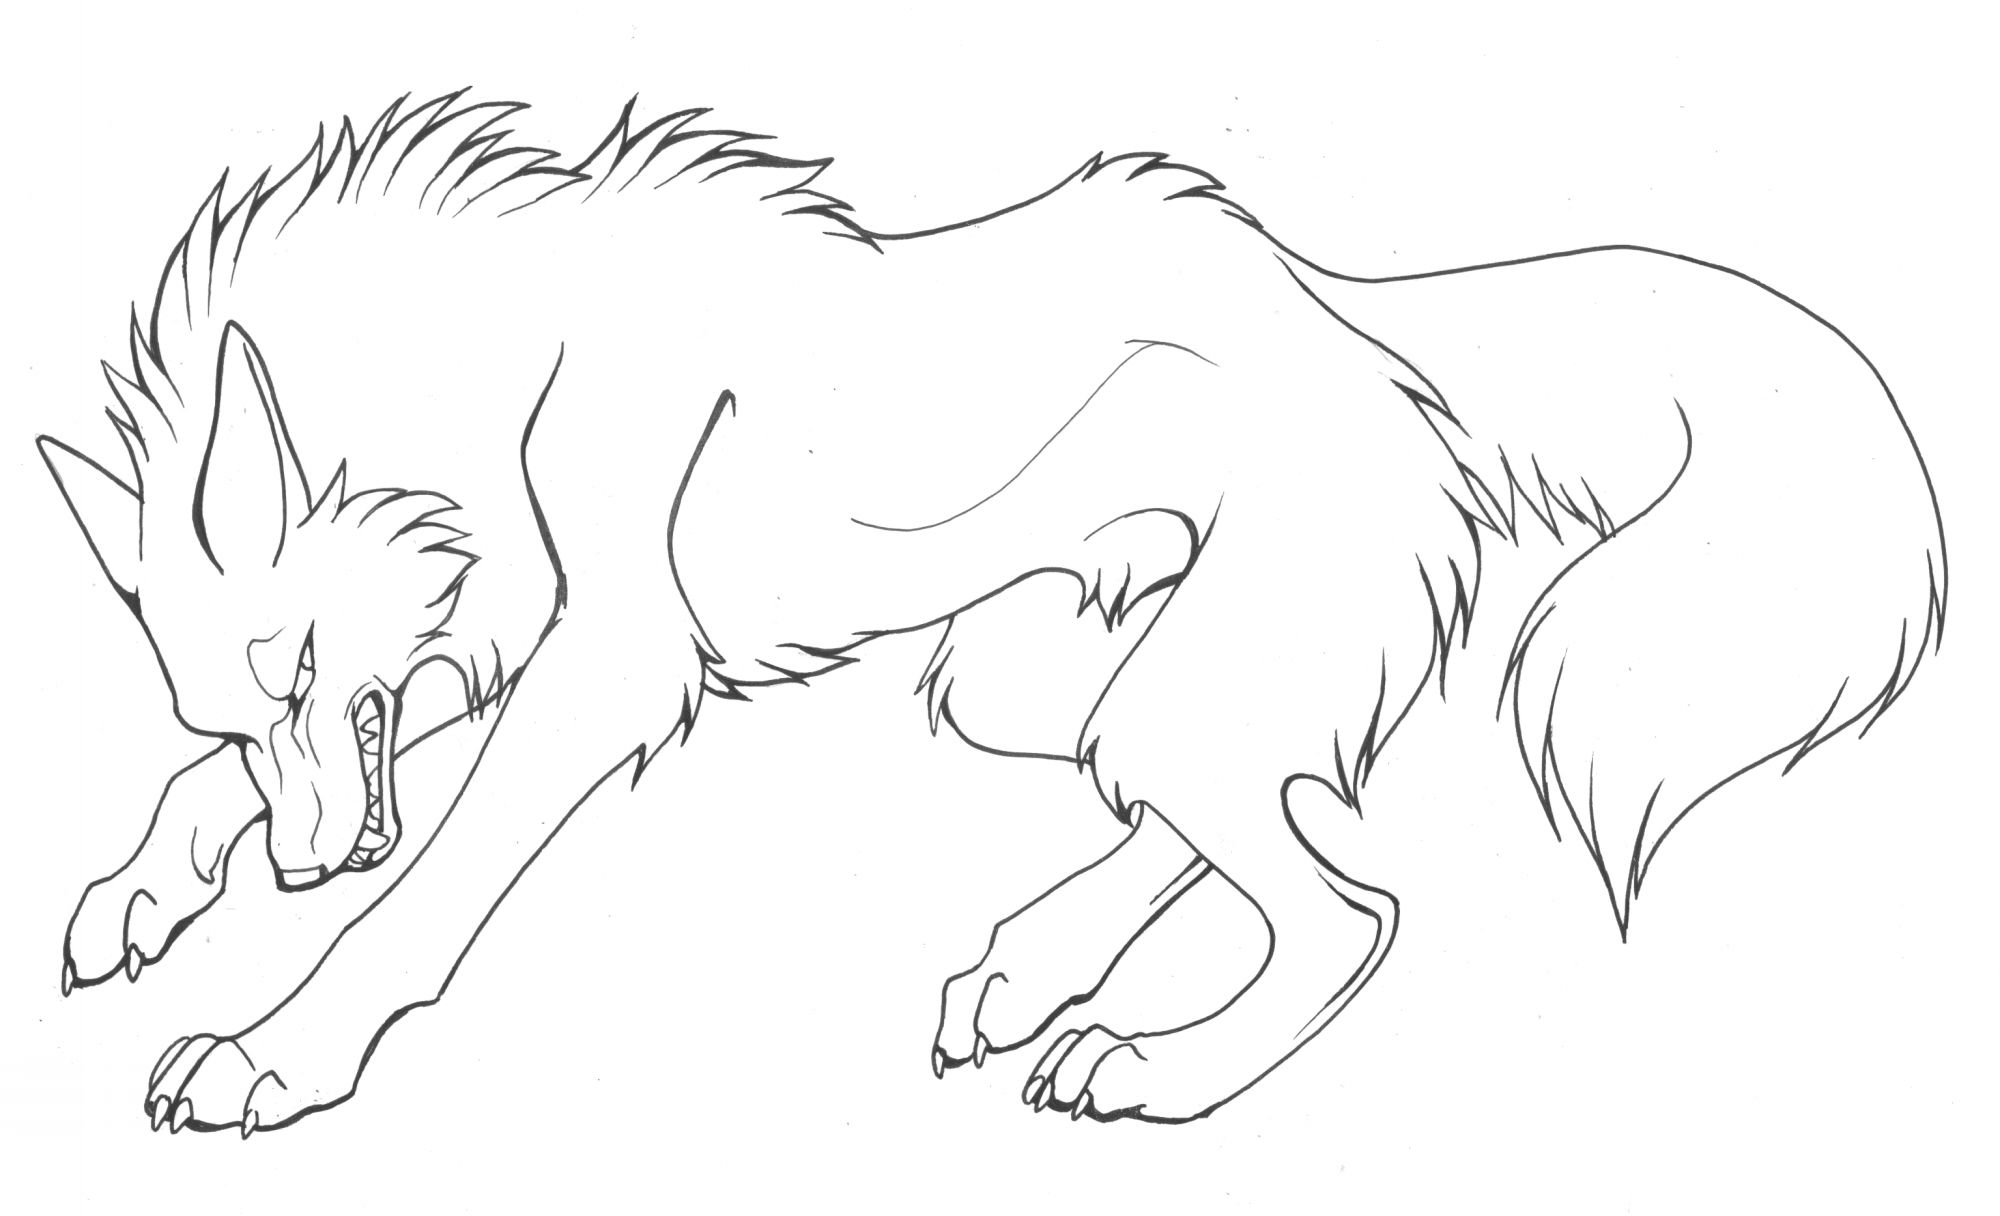 Online coloring wolves - Wolf Drawings Animal Coloring Pages Art Reference Wolves Tattoo Ideas Art Ideas Anime Wolf Page Online Drawing Animals